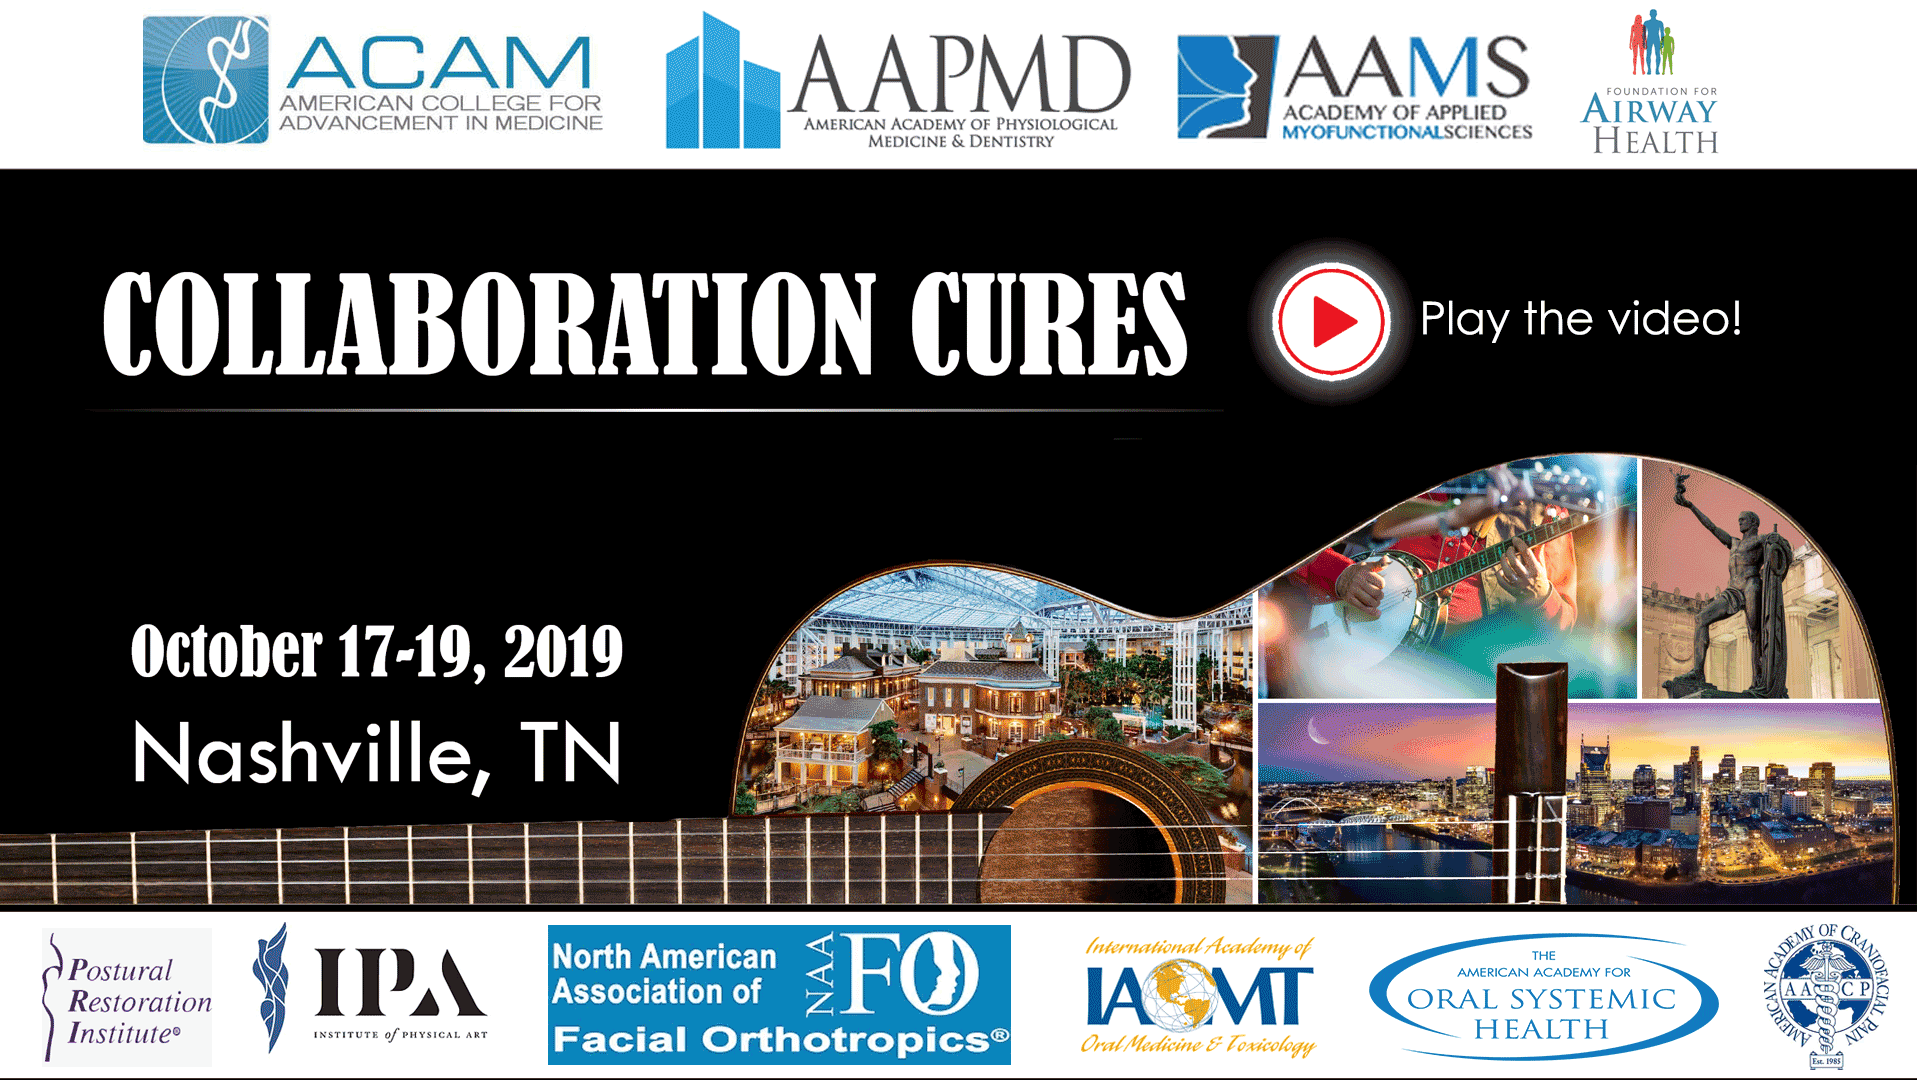 AAPMD – American Academy of Physiological Medicine & Dentistry